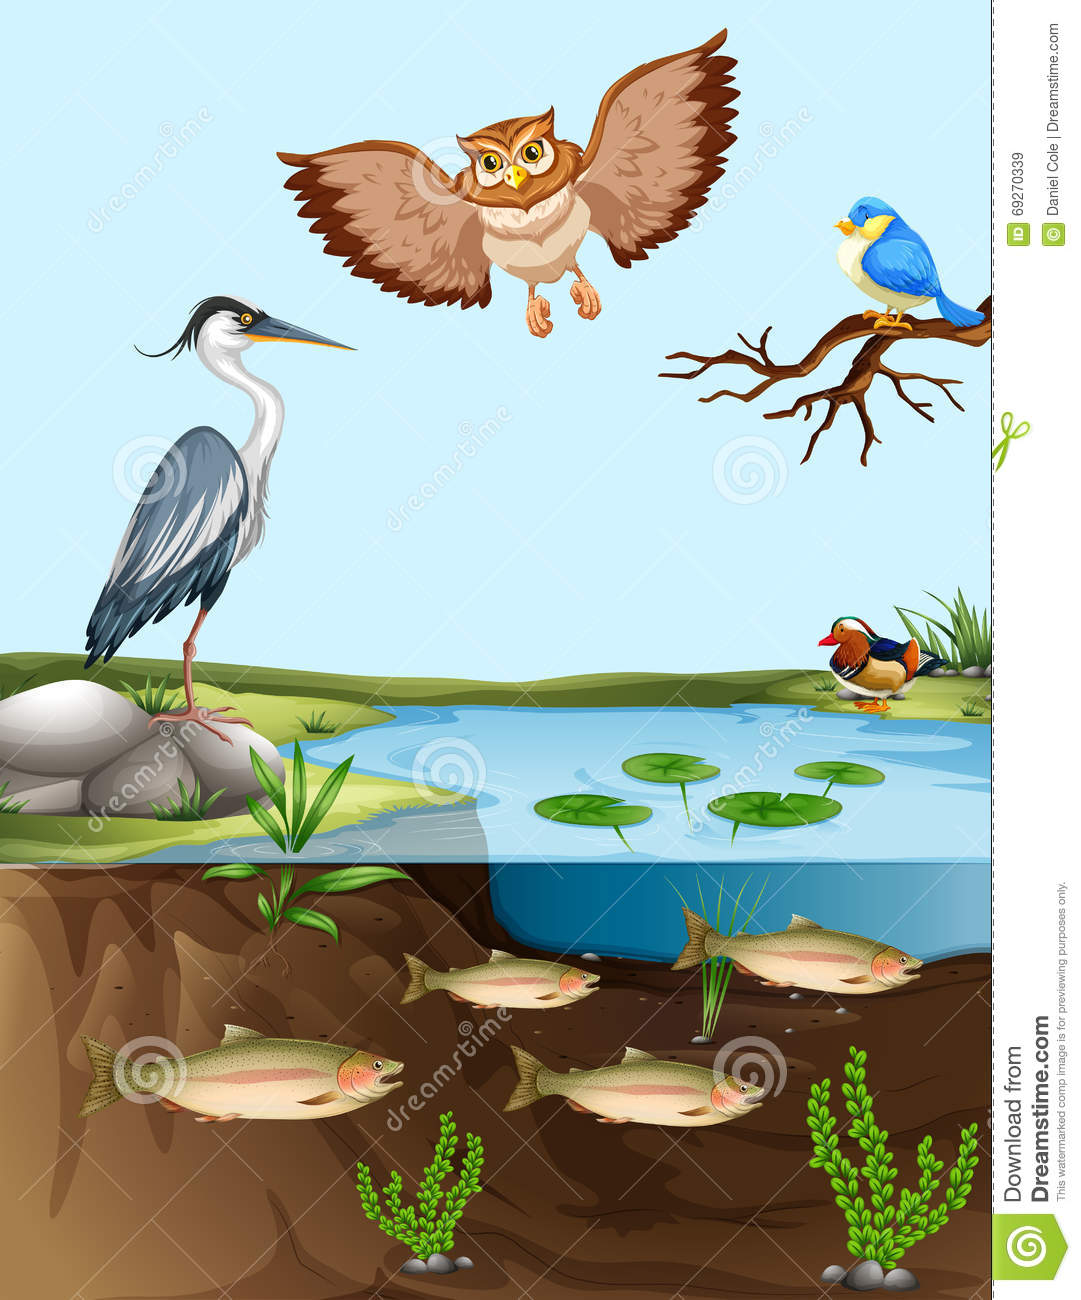 Birds and fish by the pond